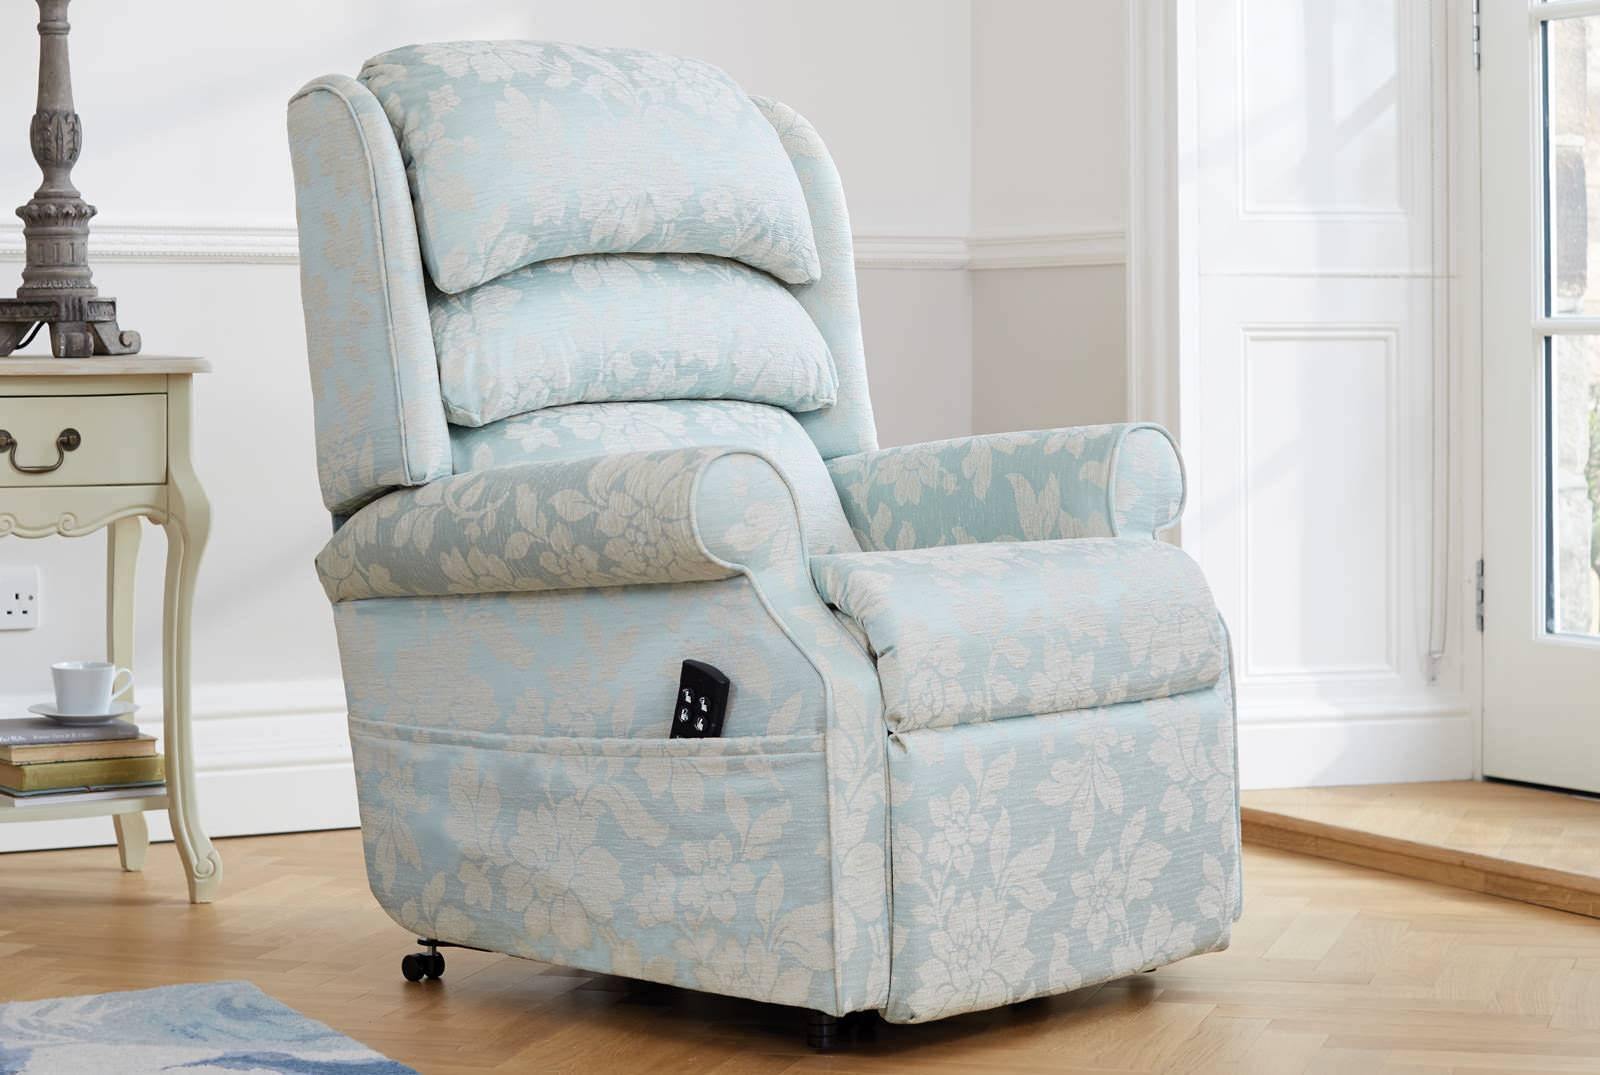 Waltham Dual Motor Riser Recliner in Conway Floral Wedgwood